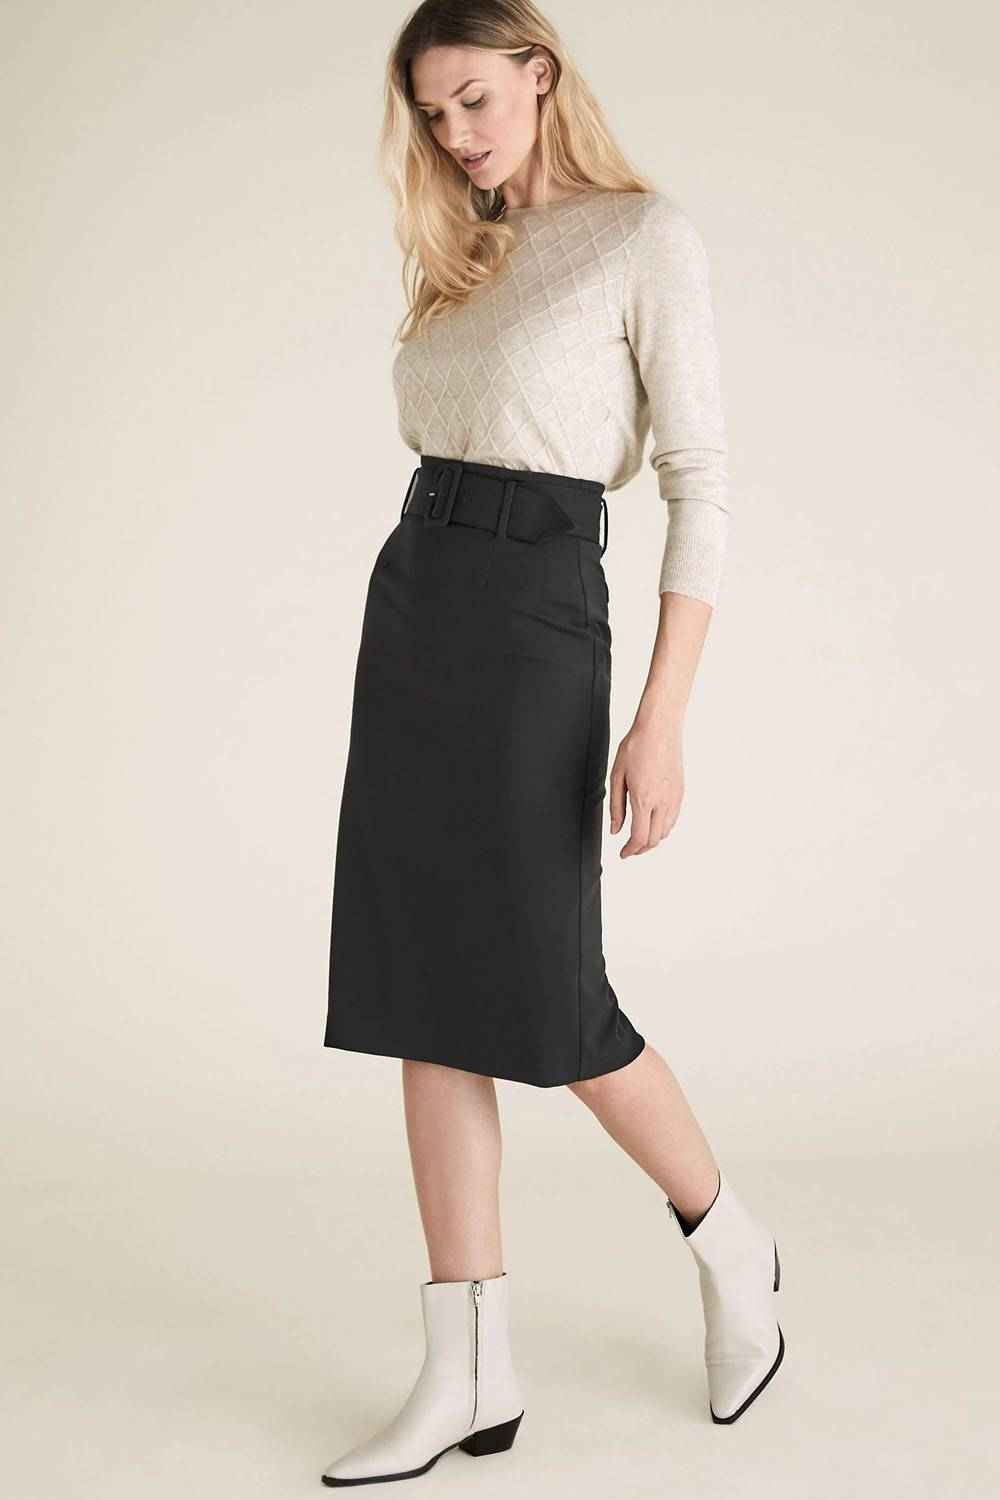 marks and spencer pencil skirt